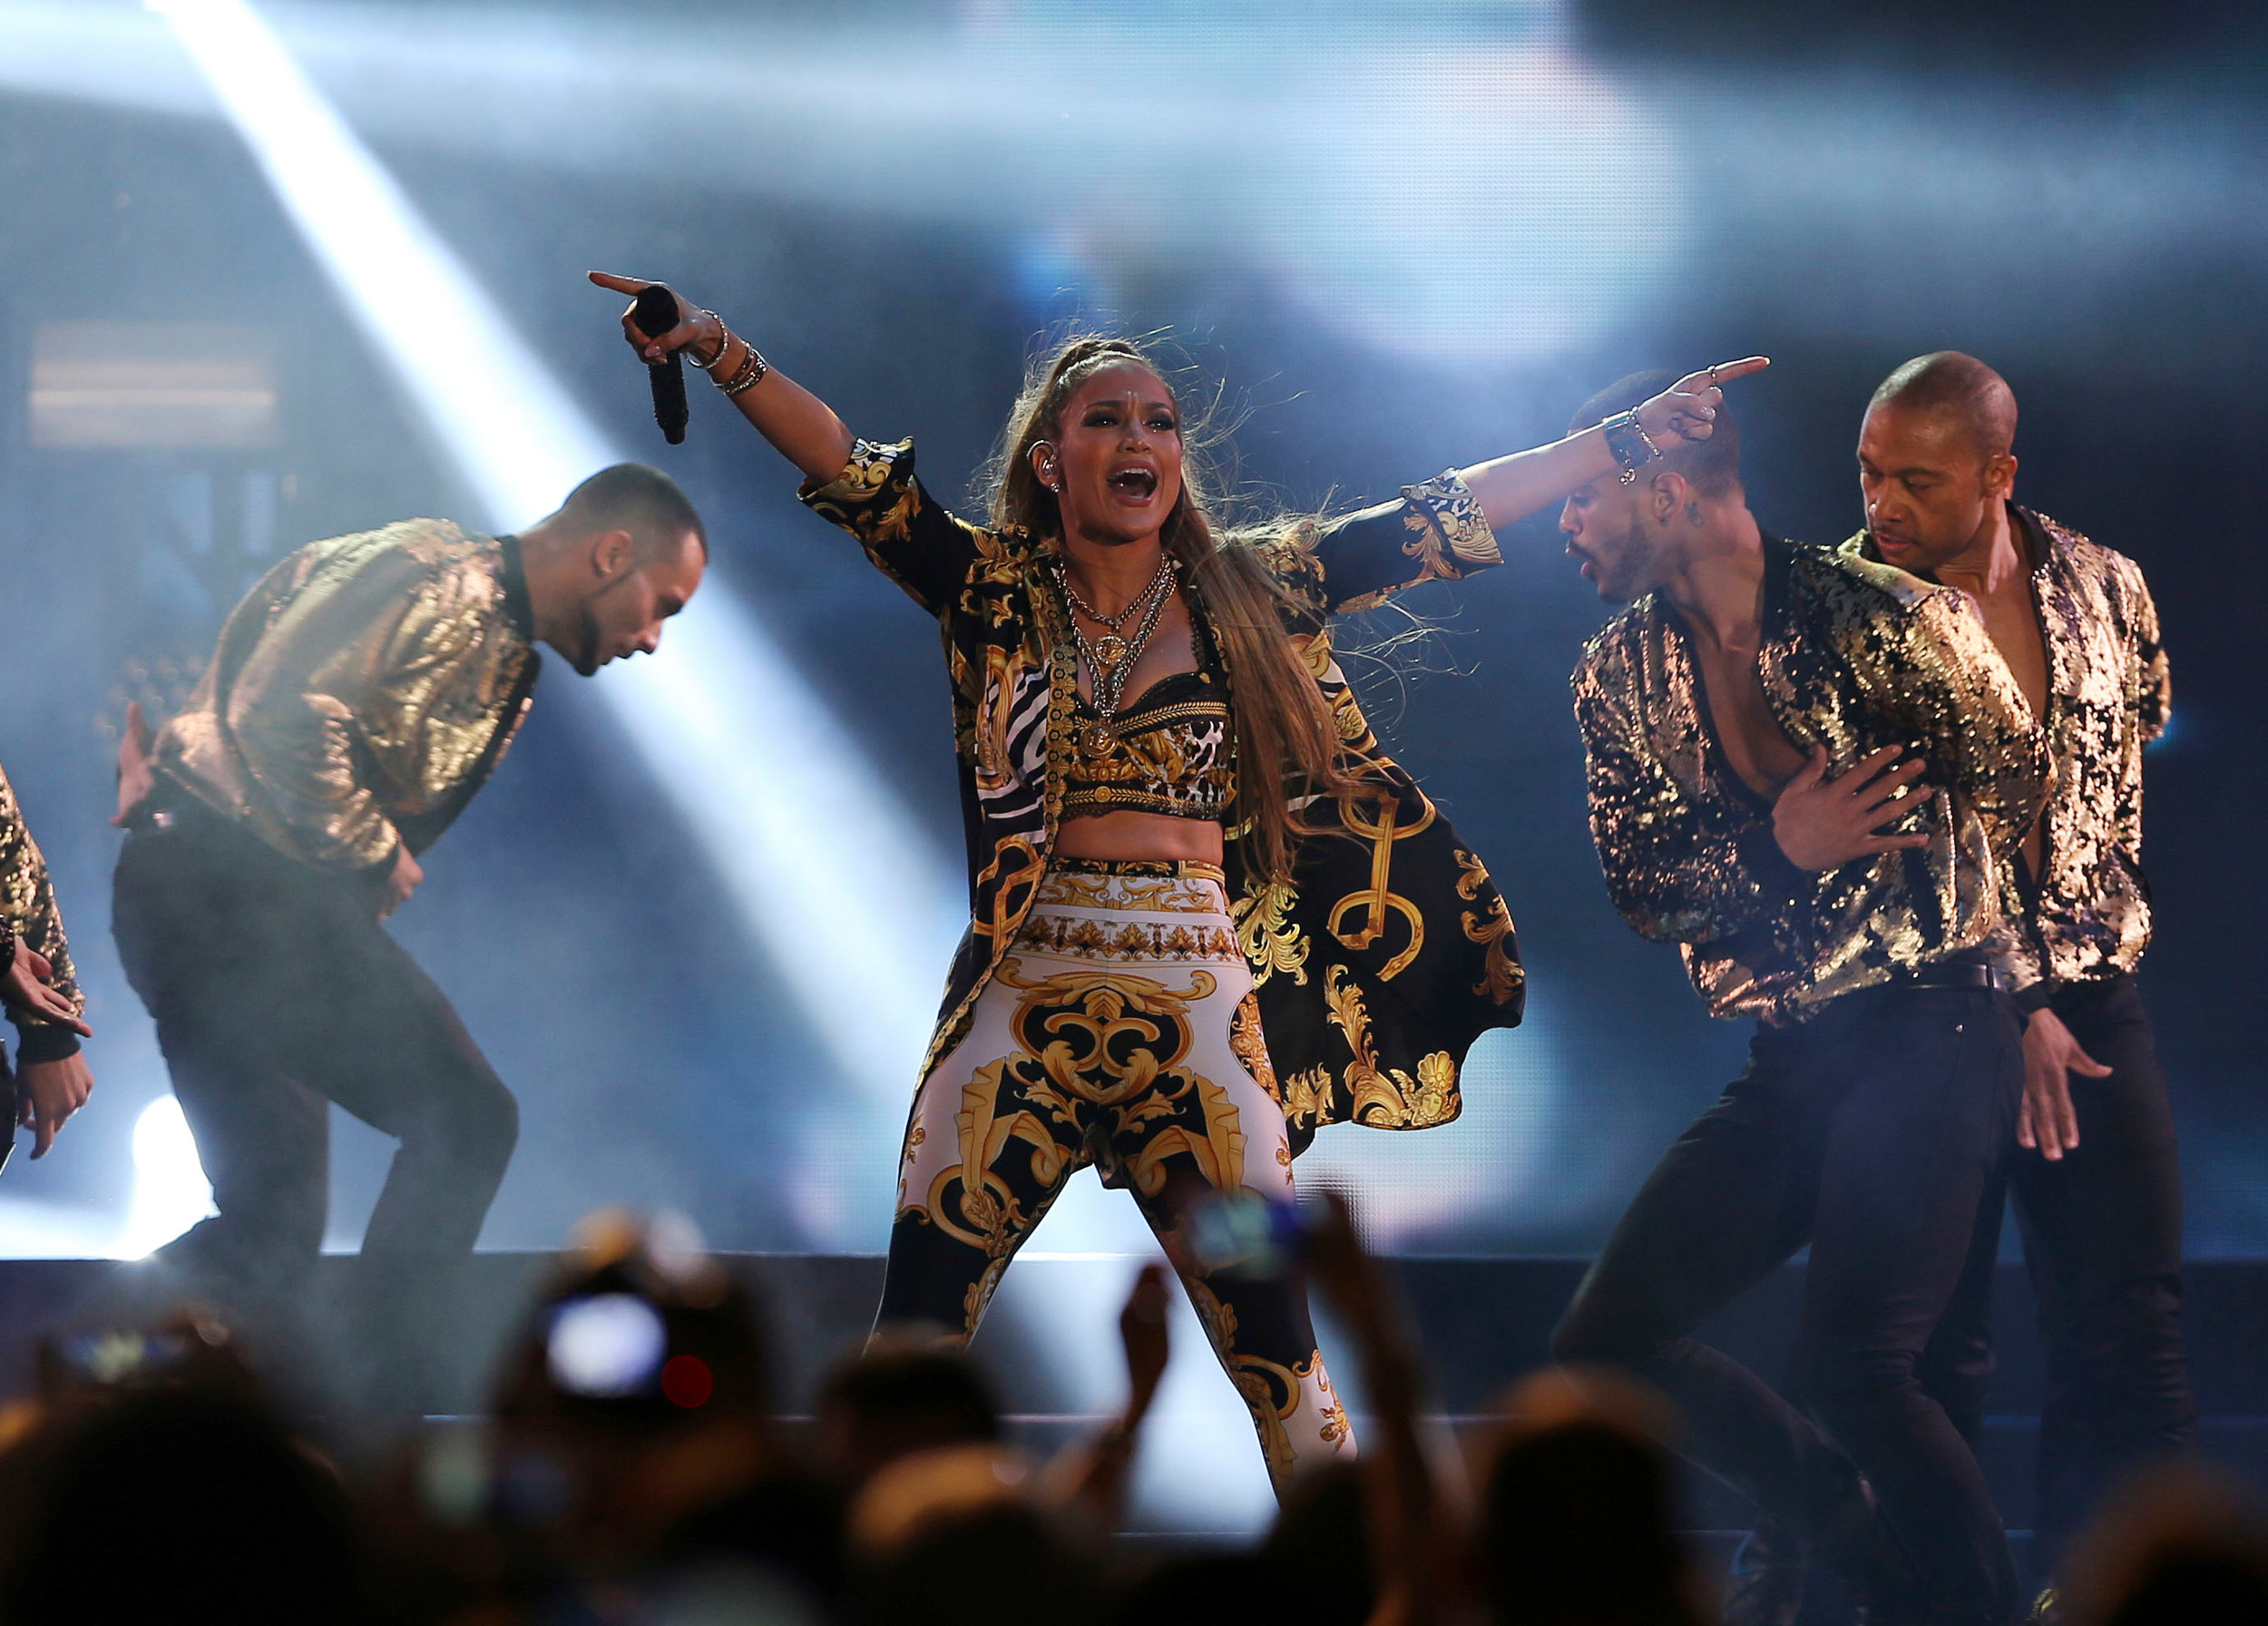 Jennifer Lopez performs at the Air Show Gala in Dubai, United Arab Emirates, on Nov. 15, 2017.